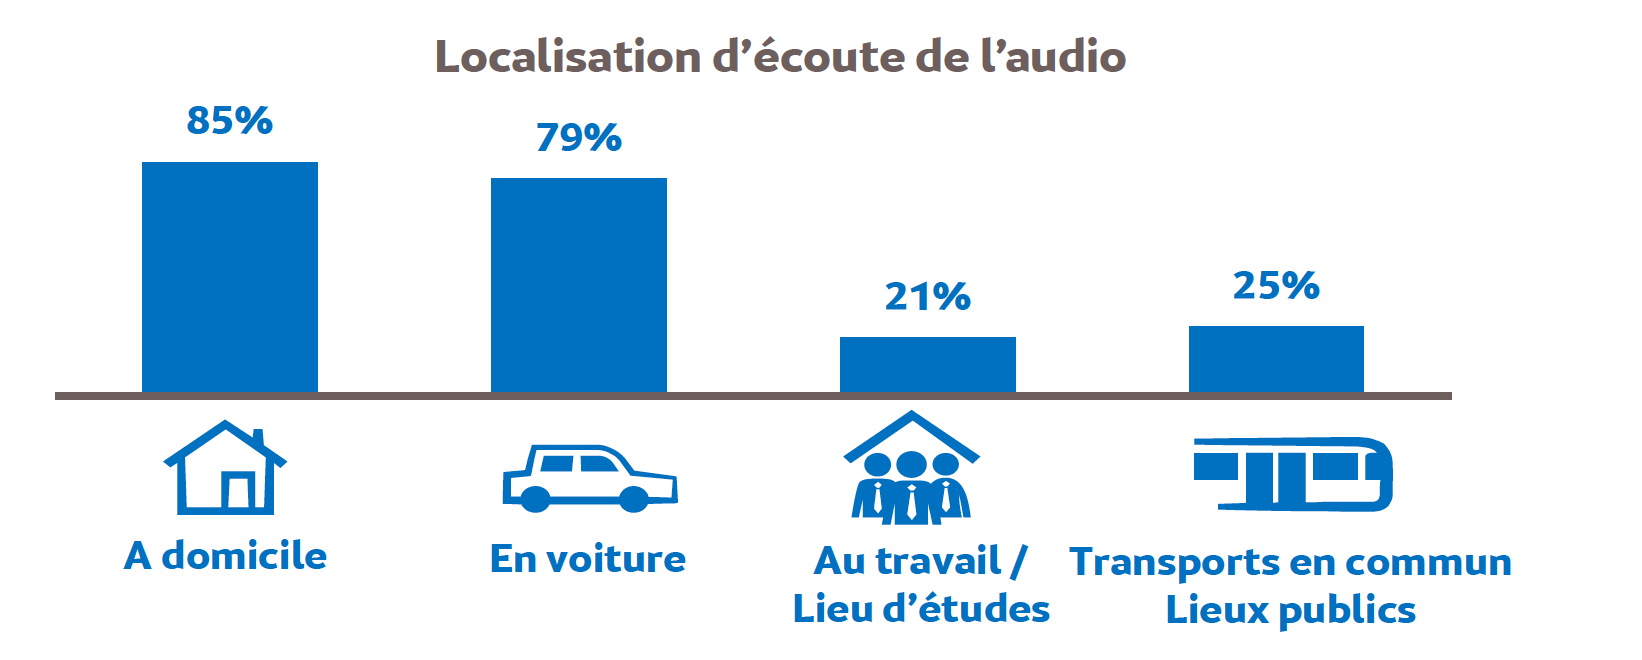 Source : Médiamétrie - Global Audio - avril 2020 - Copyright Médiamétrie - Tous droits réservés